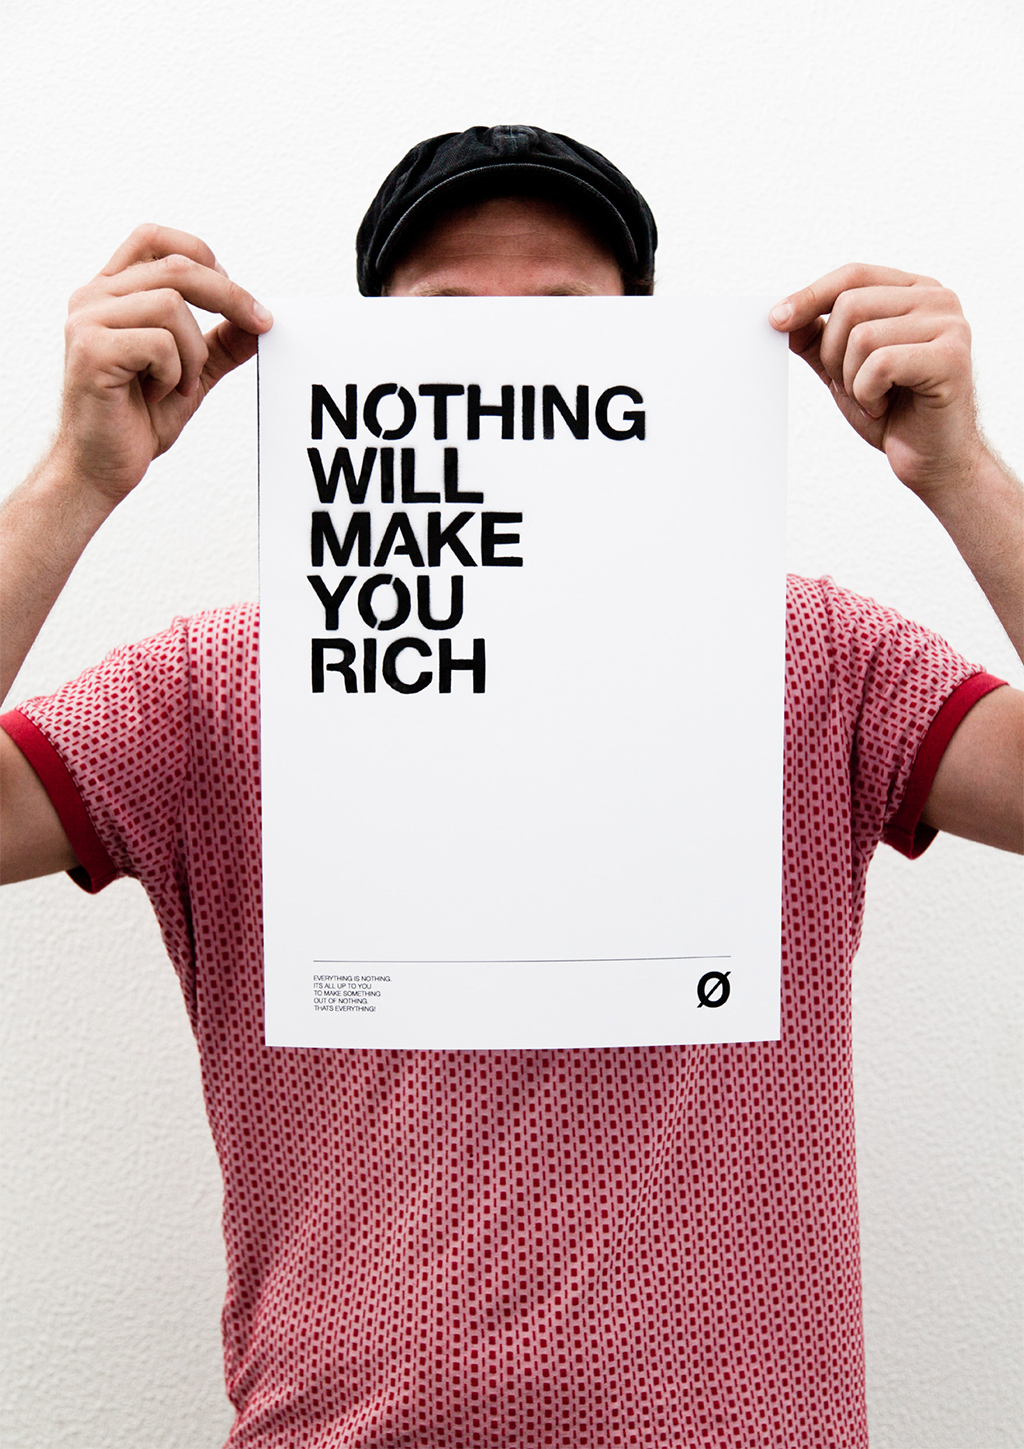 ME_ehrenbrandtner_Design_Grafik_Konzept_Gestaltung_web_Linz_Nothing_but_the_truth_14